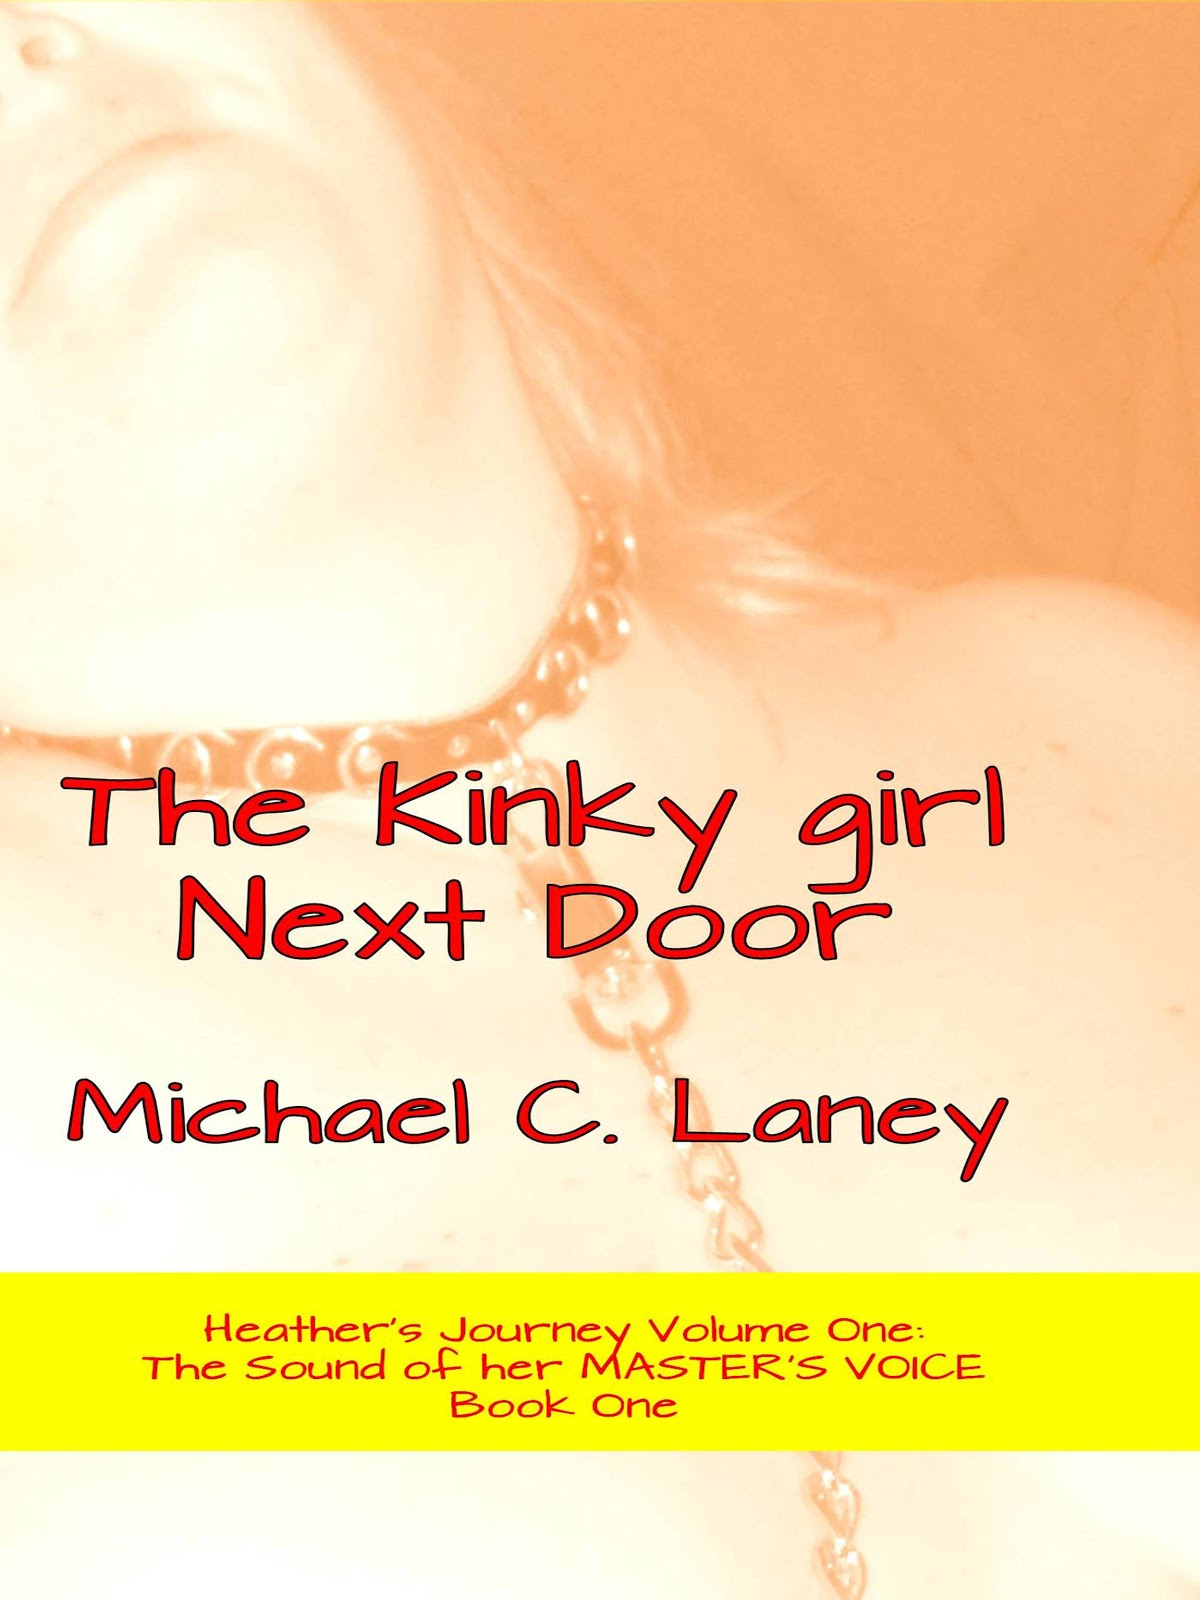 The Kinky girl Next Door